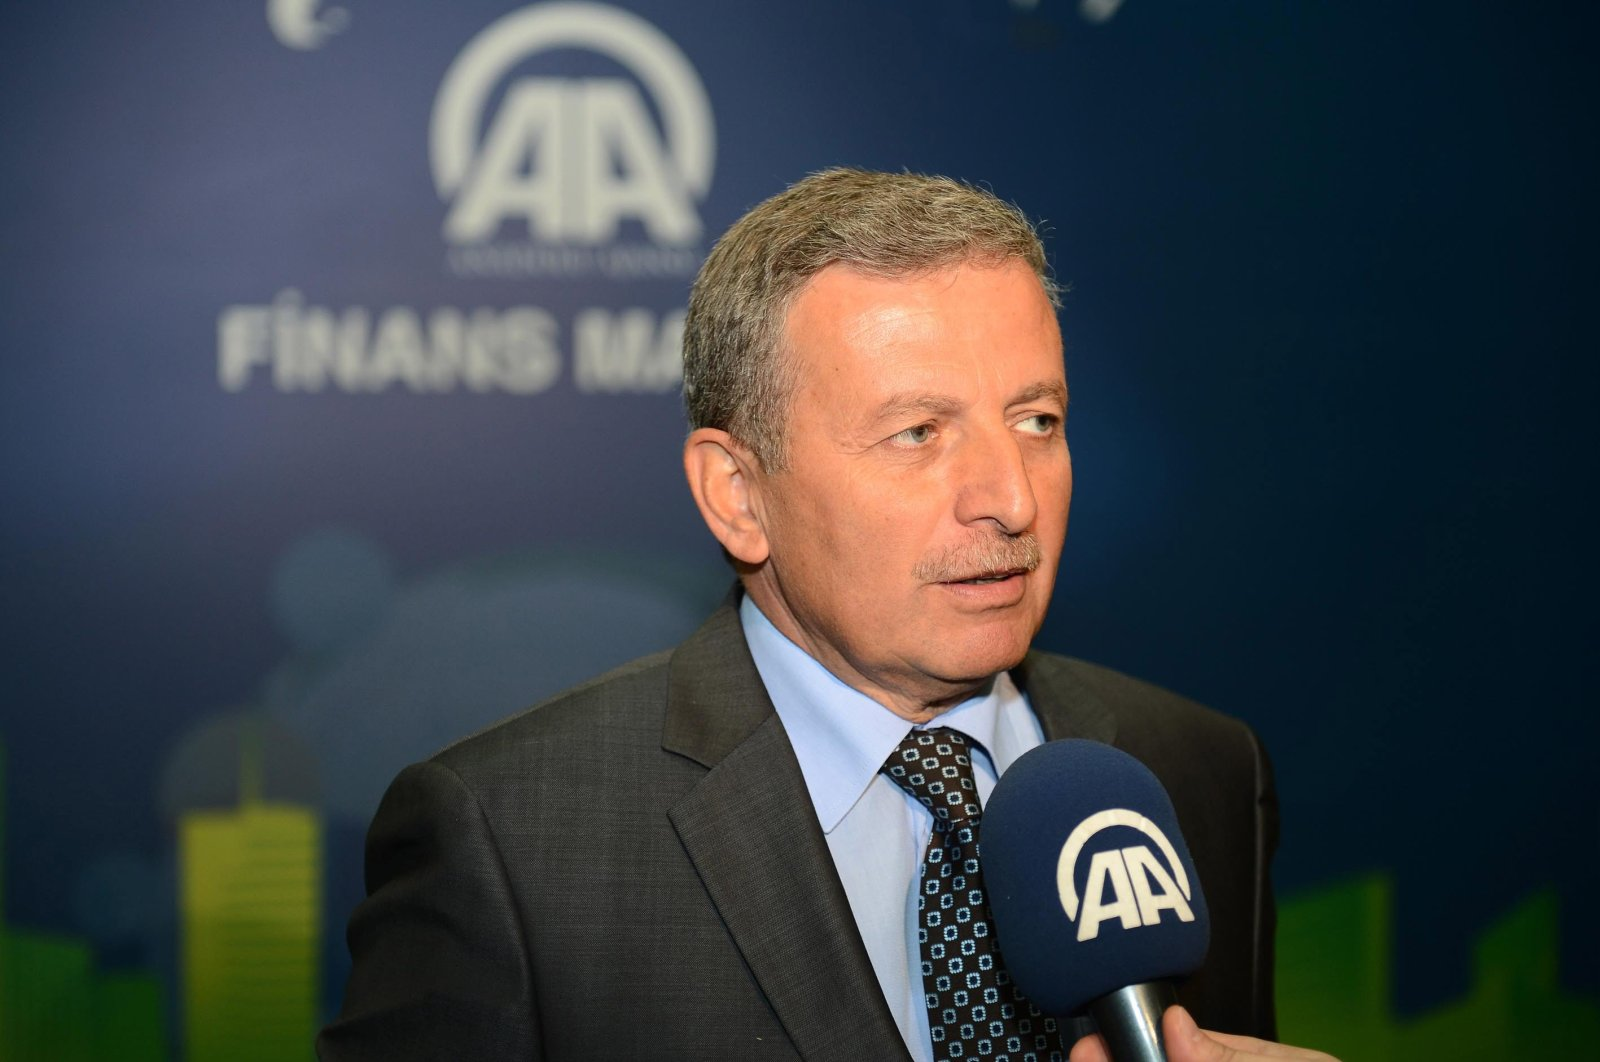 Secretary-General of the Participation Banks Association of Turkey (TKBB), Osman Akyüz. (AA Photo)